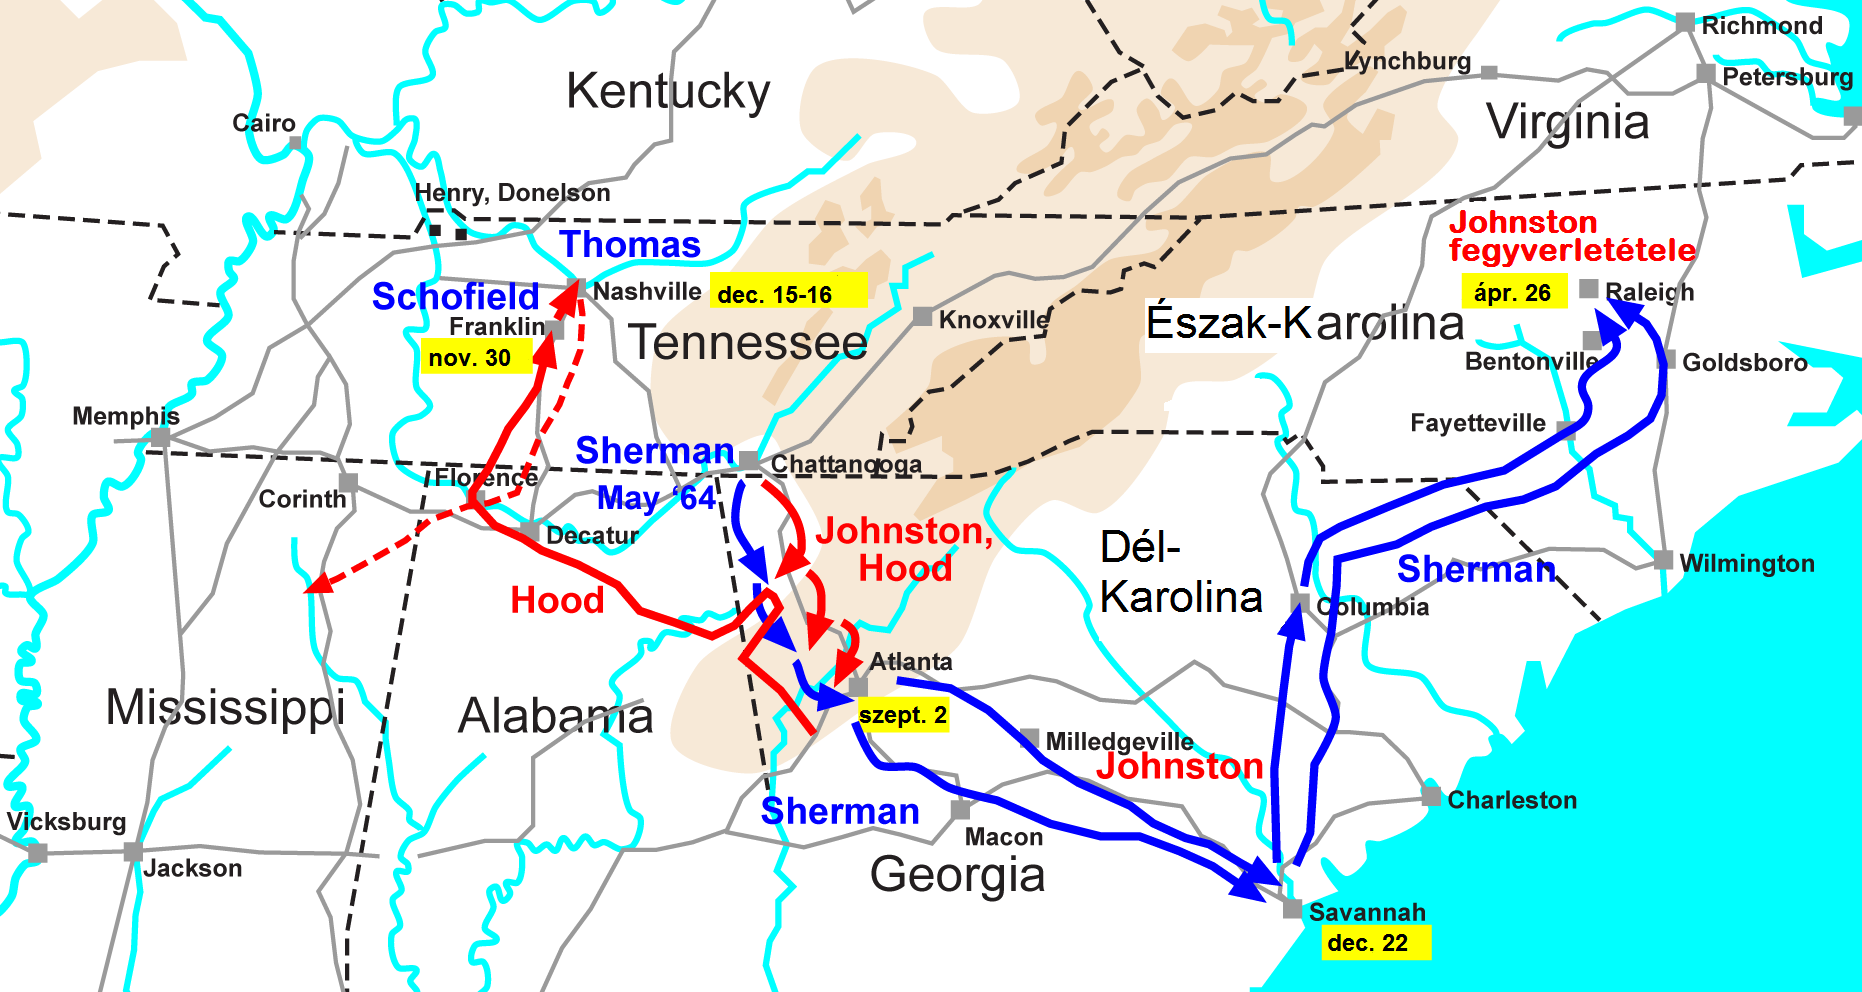 File:Sherman hadjáratai a déli államokban 1864–1865.png ... on atlanta campaign map, george b. mcclellan, confederate states of america, bleeding kansas map, pickett's charge map, battle of fredericksburg map, battle of antietam map, james longstreet, gettysburg campaign map, american civil war, battle of perryville map, battle of nashville map, battle of atlanta map, jefferson davis, vicksburg campaign map, anaconda plan map, battle of shiloh, battle of fort sumter, fort sumter map, philip sheridan, appomattox court house map, battle of resaca map, george meade, battle of gettysburg, ambrose burnside, george armstrong custer, morgan's raid map, battle of vicksburg, ulysses s. grant, battle of antietam, stonewall jackson, robert e. lee, second battle of bull run map, chattanooga campaign map, battle of olustee map, american civil war map, first battle of bull run, george pickett,